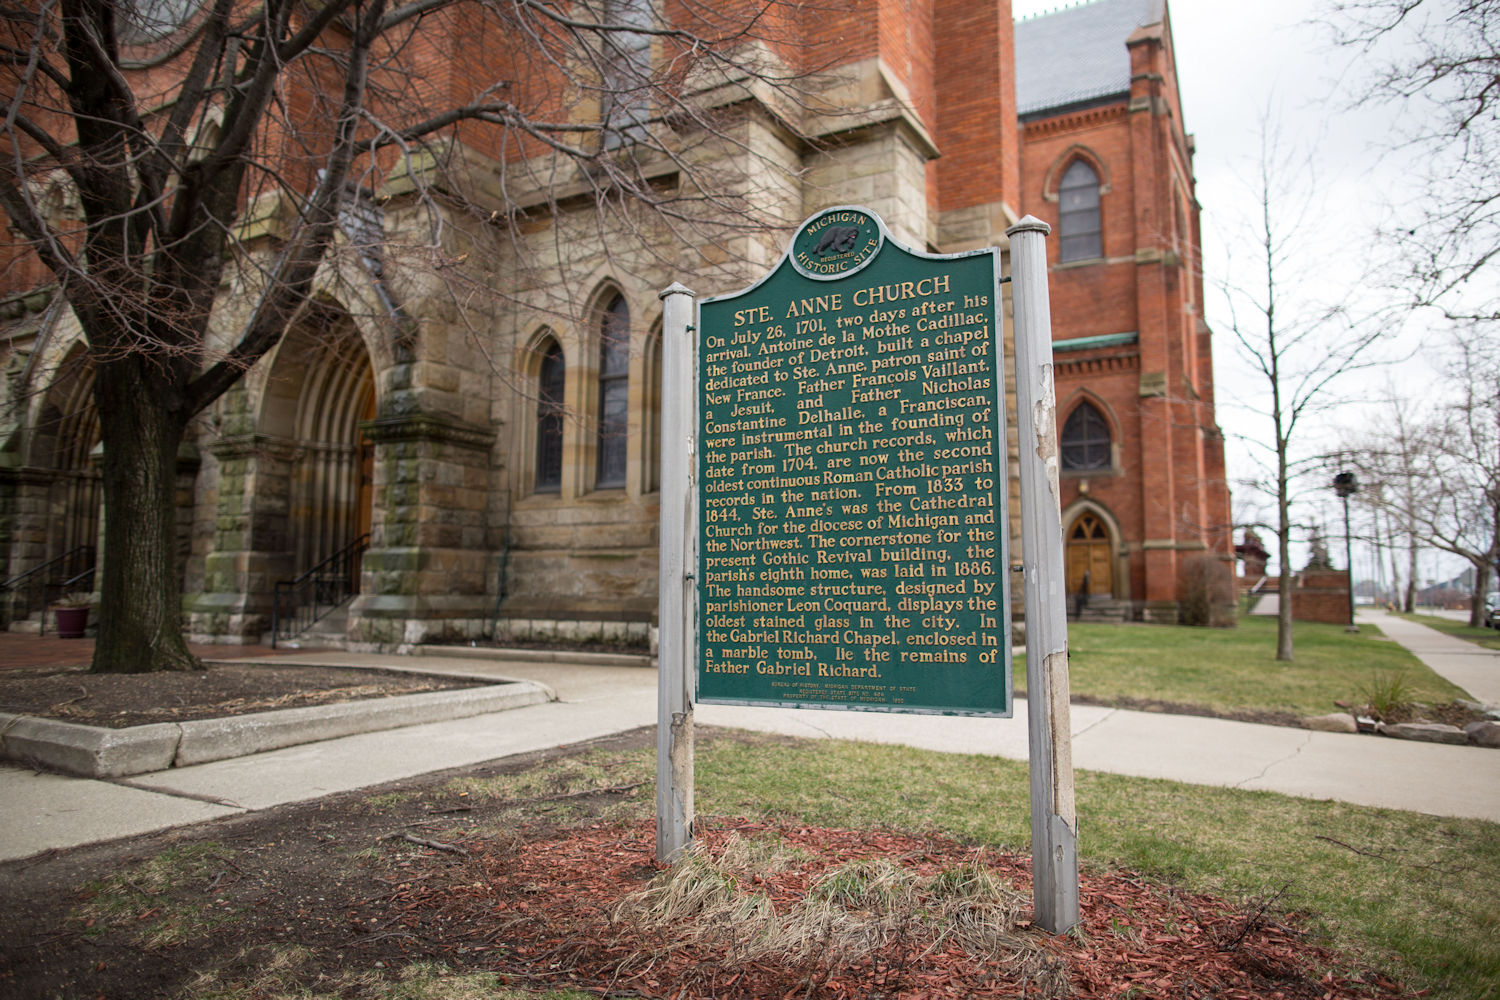 A historical marker outside the church